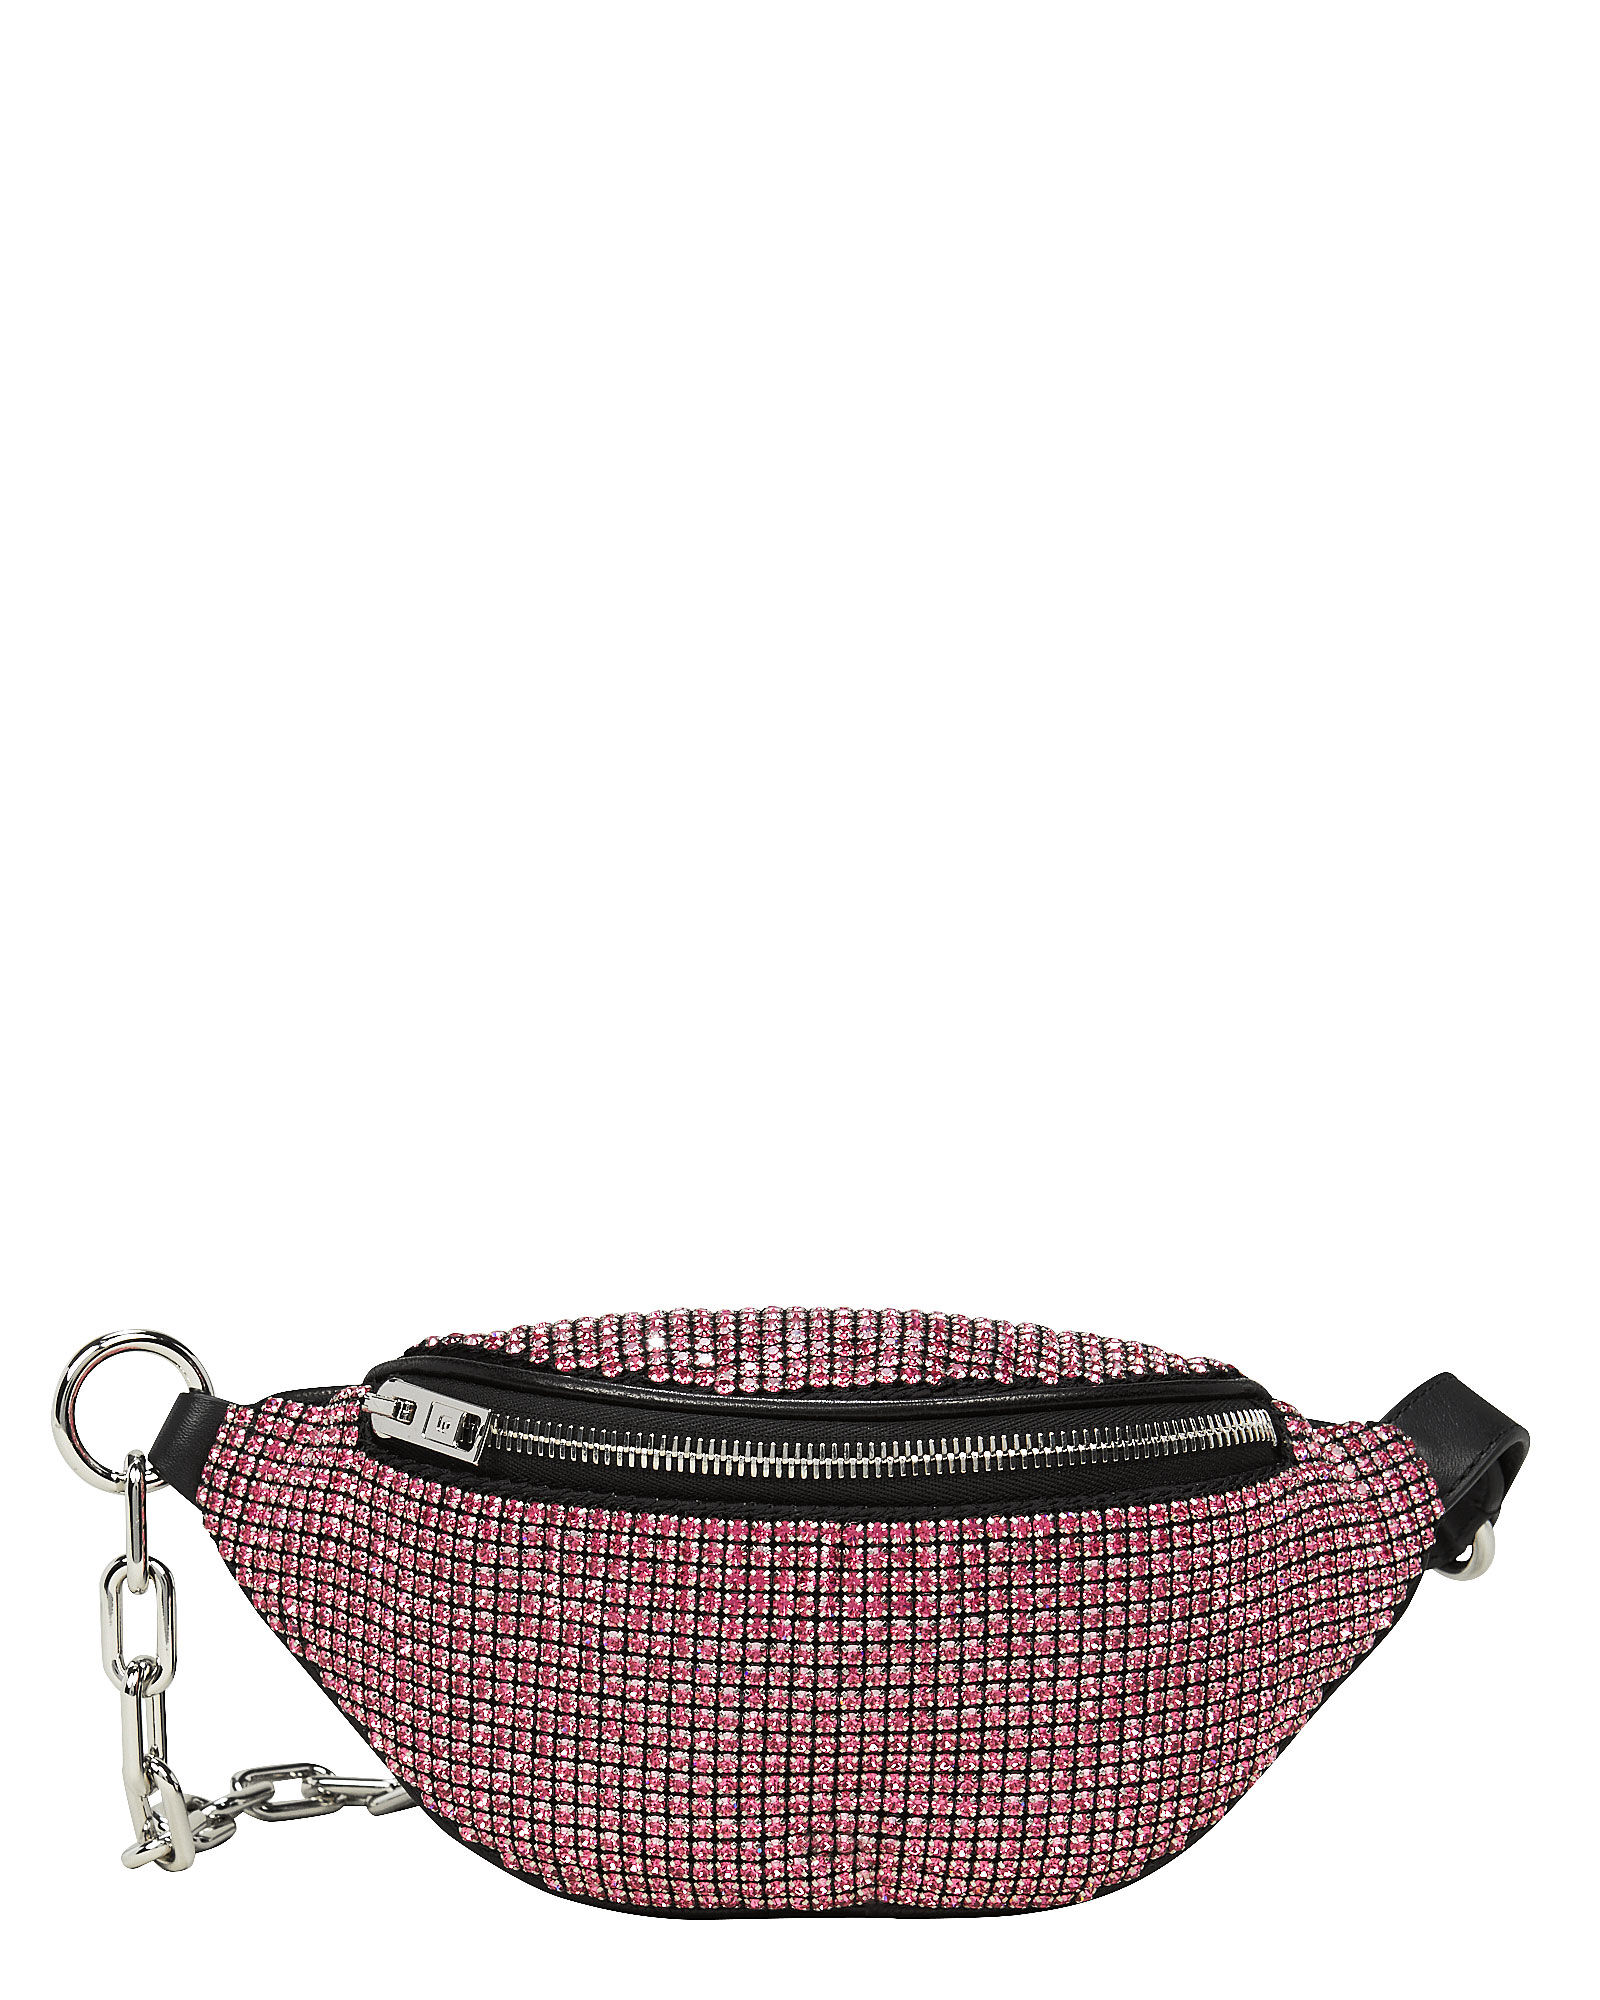 Attica Rhinestone-Embellished Mini Fanny Bag, PINK/BLACK, hi-res